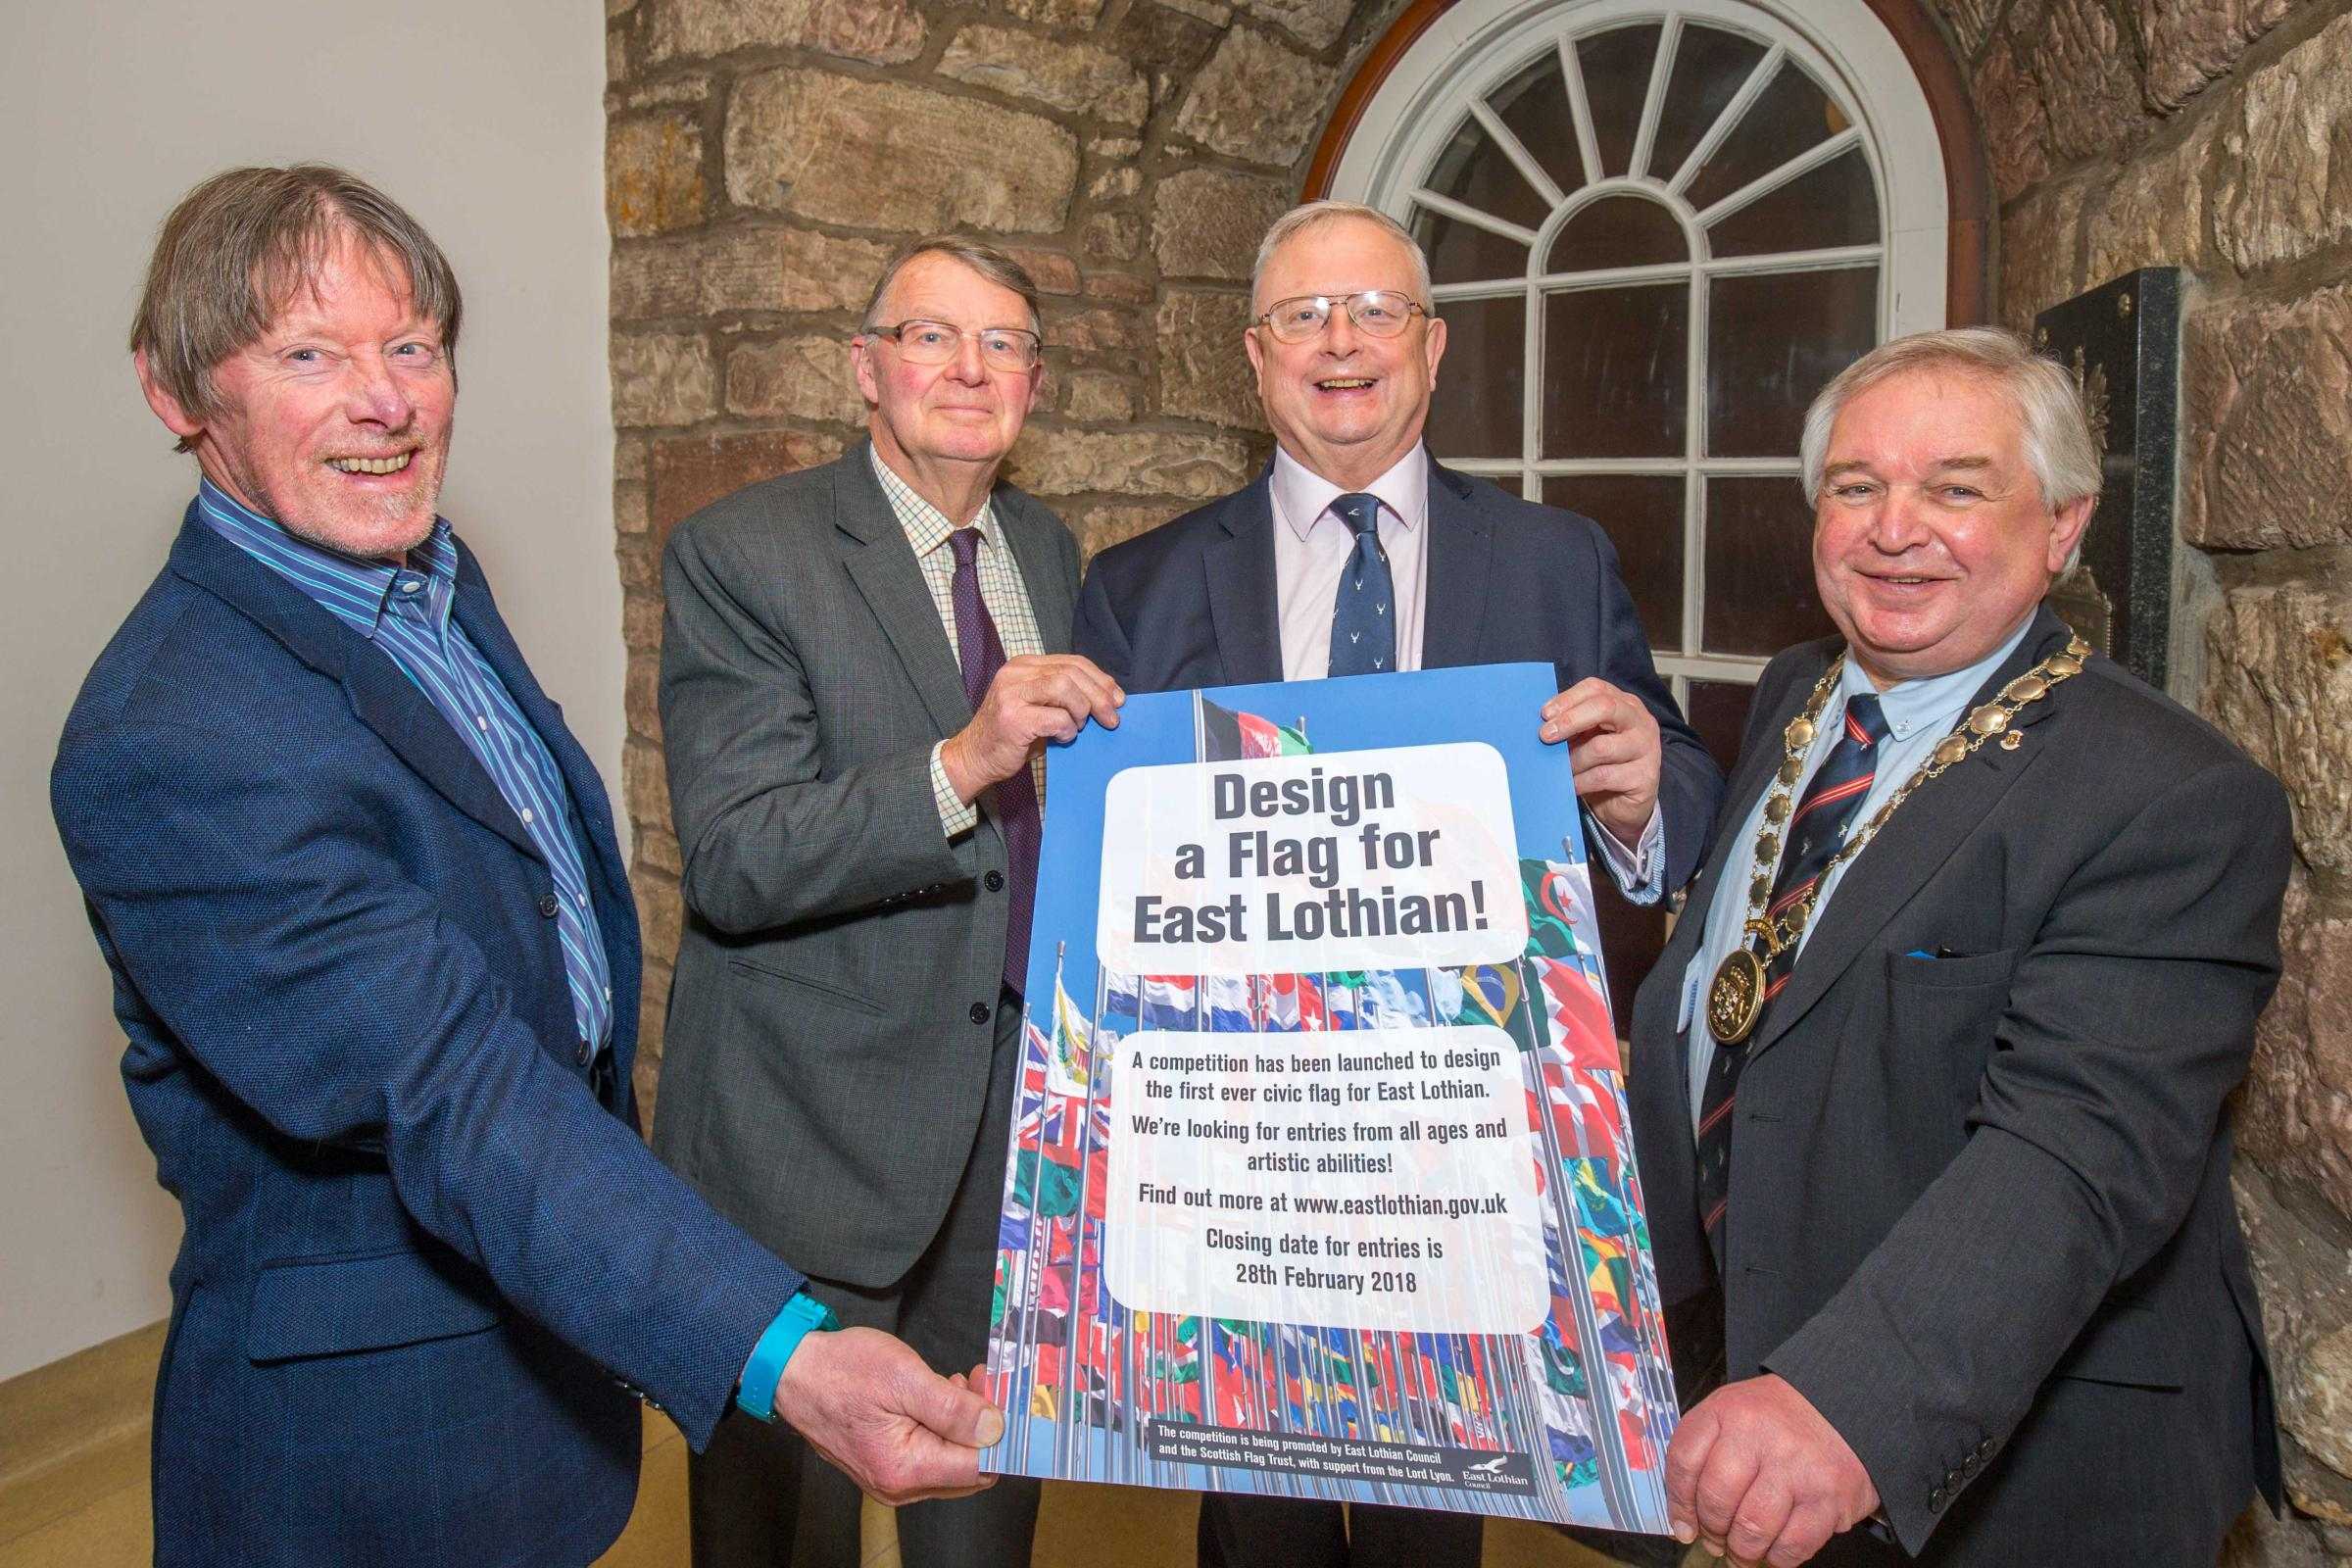 FROM LEFT: Dave Williamson, Scottish Flag Trust; Michael Williams, Lord Lieutenant of East Lothian; Joe Morrow, Lord Lyon; and Provost of East Lothian John McMillan launch the 'Design a flag for East Lothian' competition